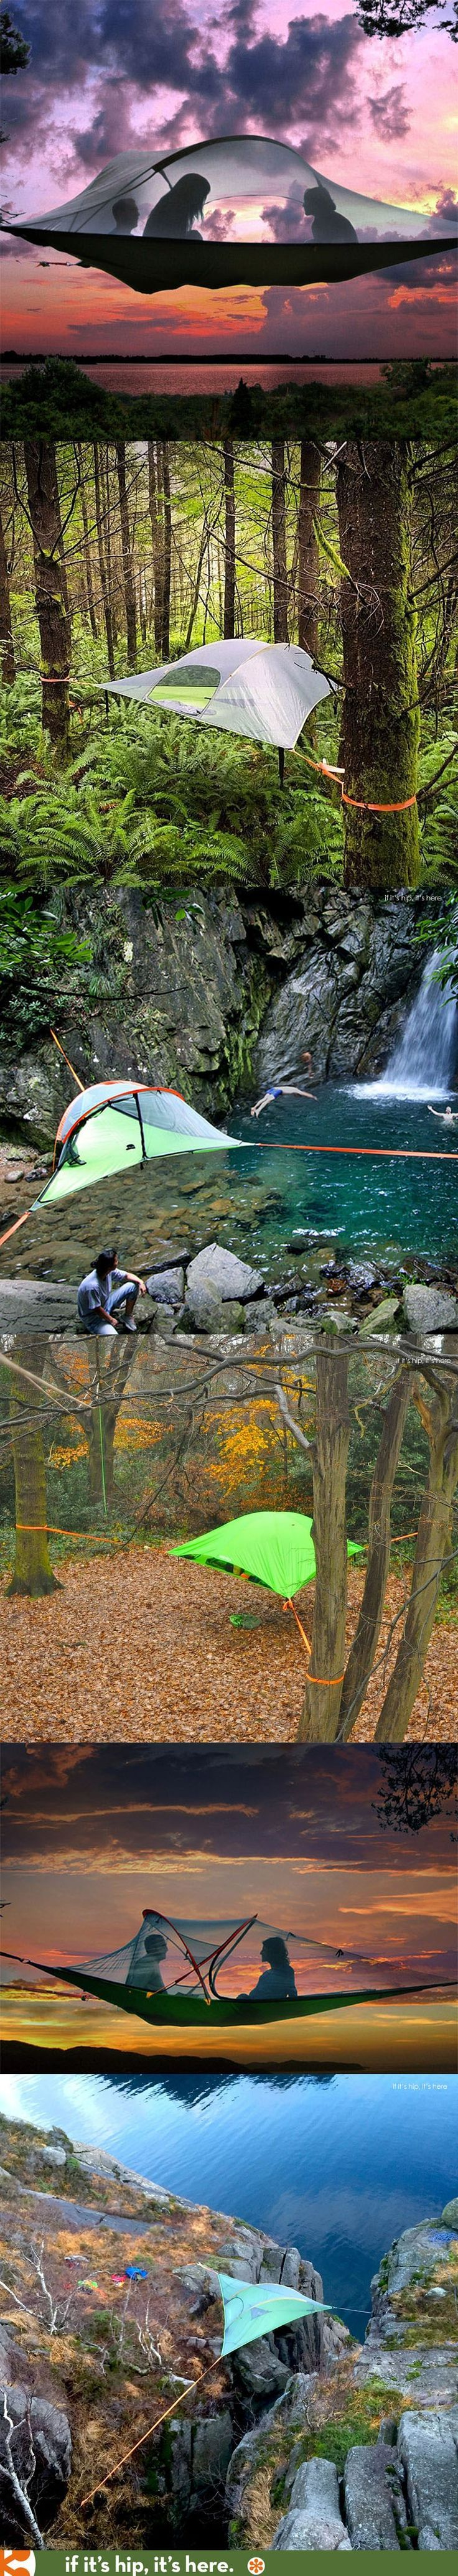 camping tents   tentsile tree tents are amazing  these 3 point anchor suspended tents camping tents   tentsile tree tents are amazing  these 3 point      rh   pinterest